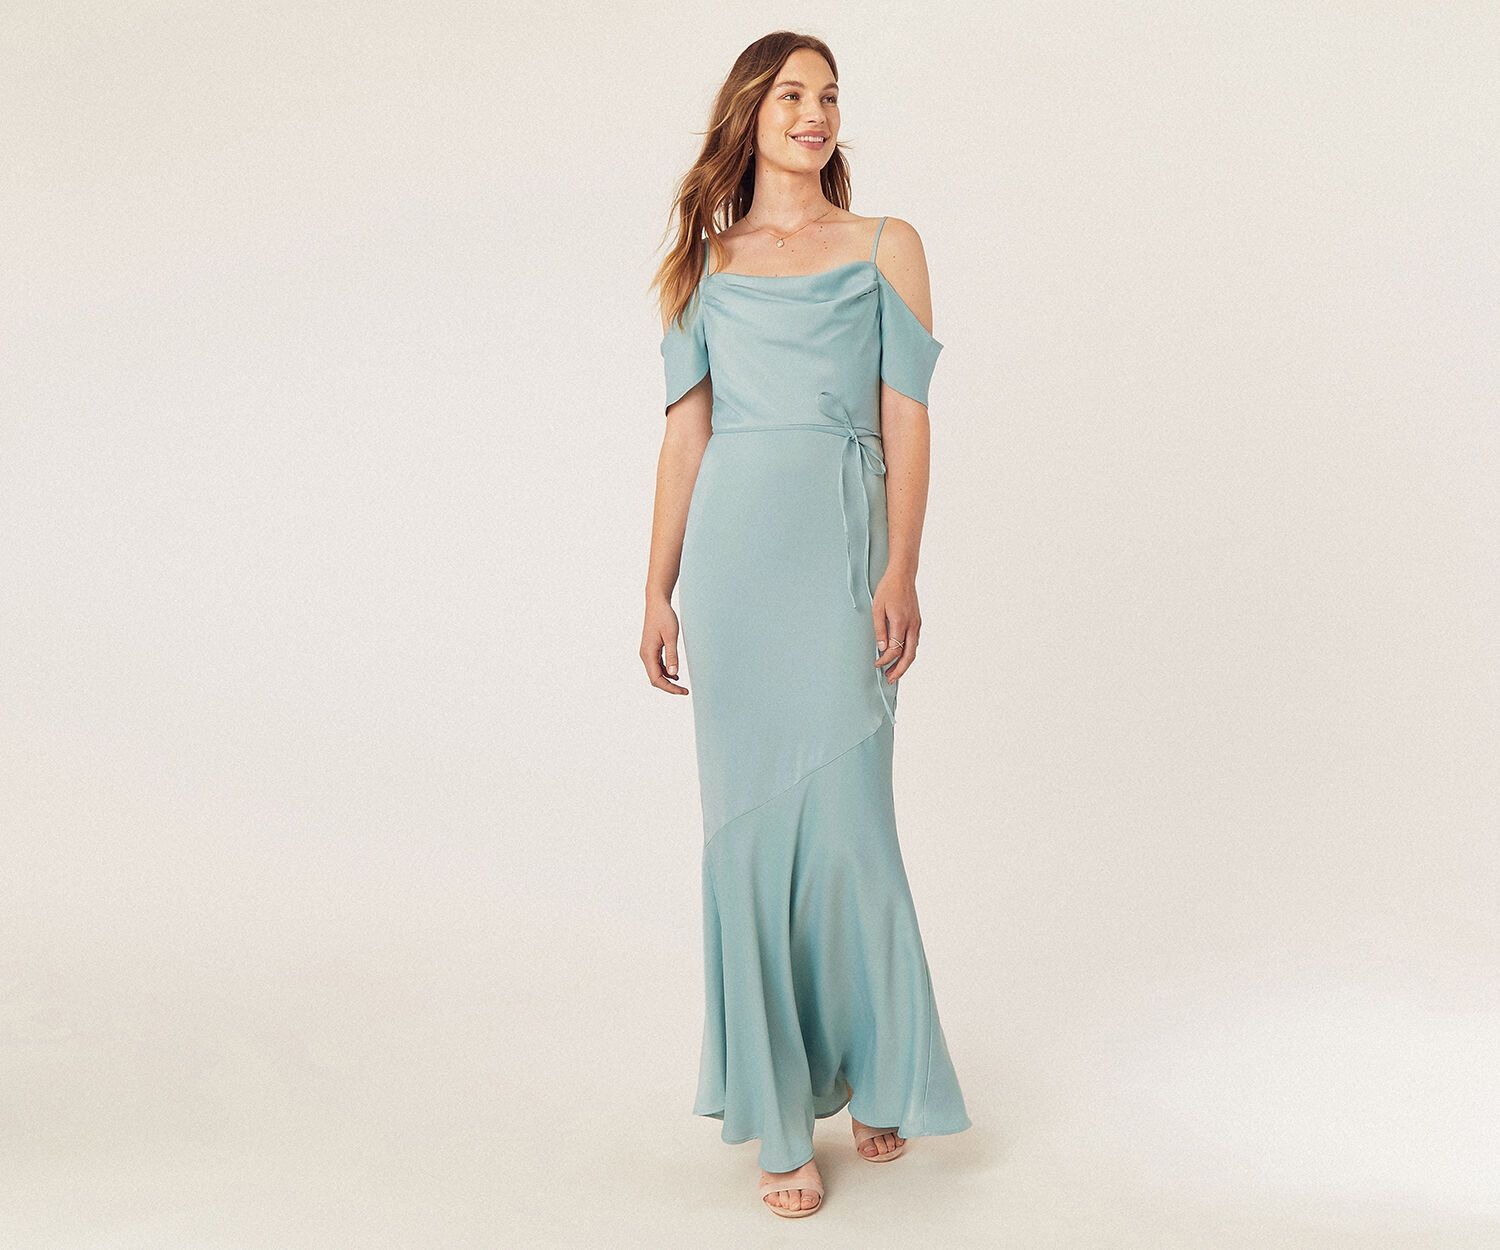 Oasis Cowl Neck Bridesmaid Dress Pale Green Sophisticated Dress Pretty Dresses Bridesmaid Dresses